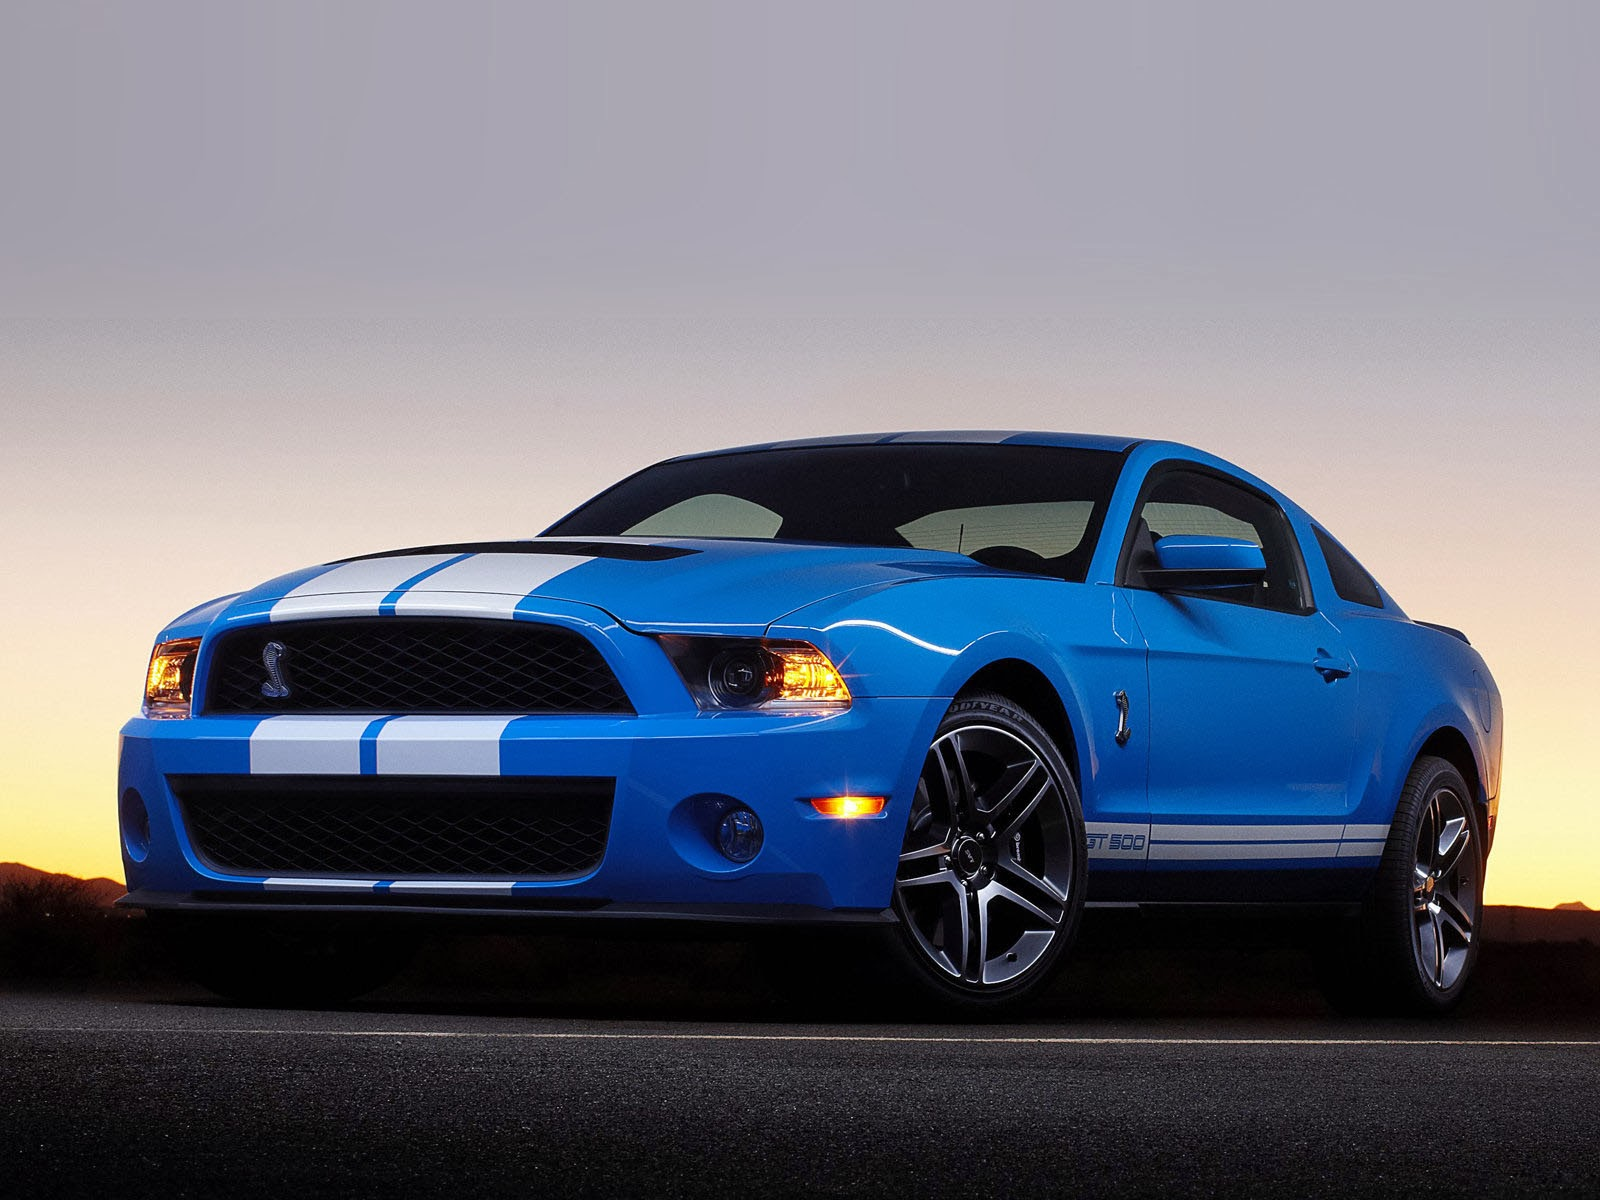 wallpapers: Ford Mustang Shelby GT500 Car Wallpapers